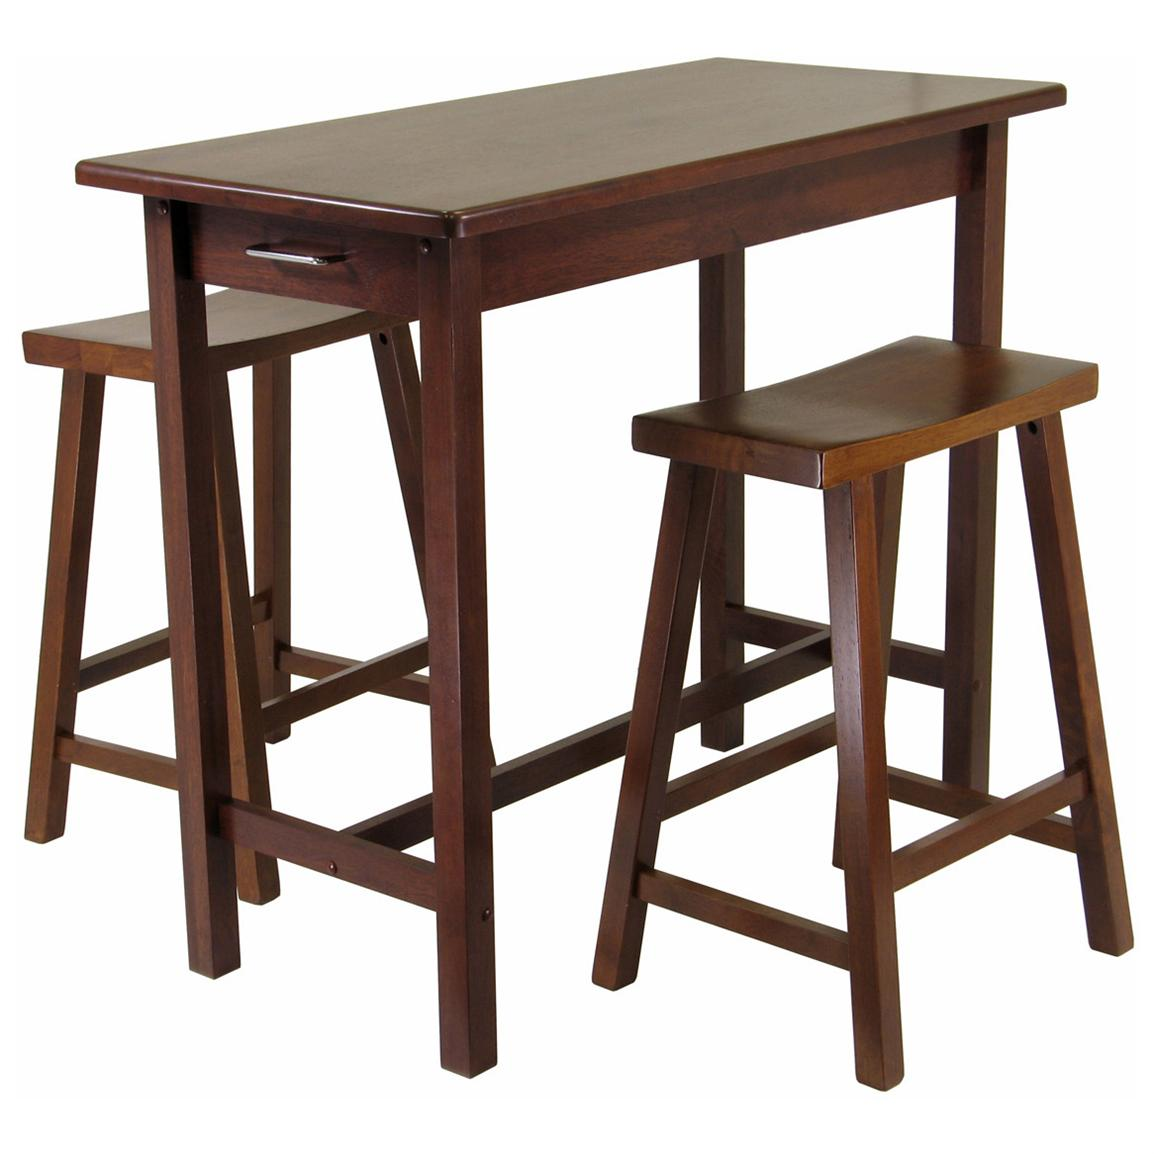 Winsome 3-Pc. Kitchen Island Table with 2 Saddle Stools